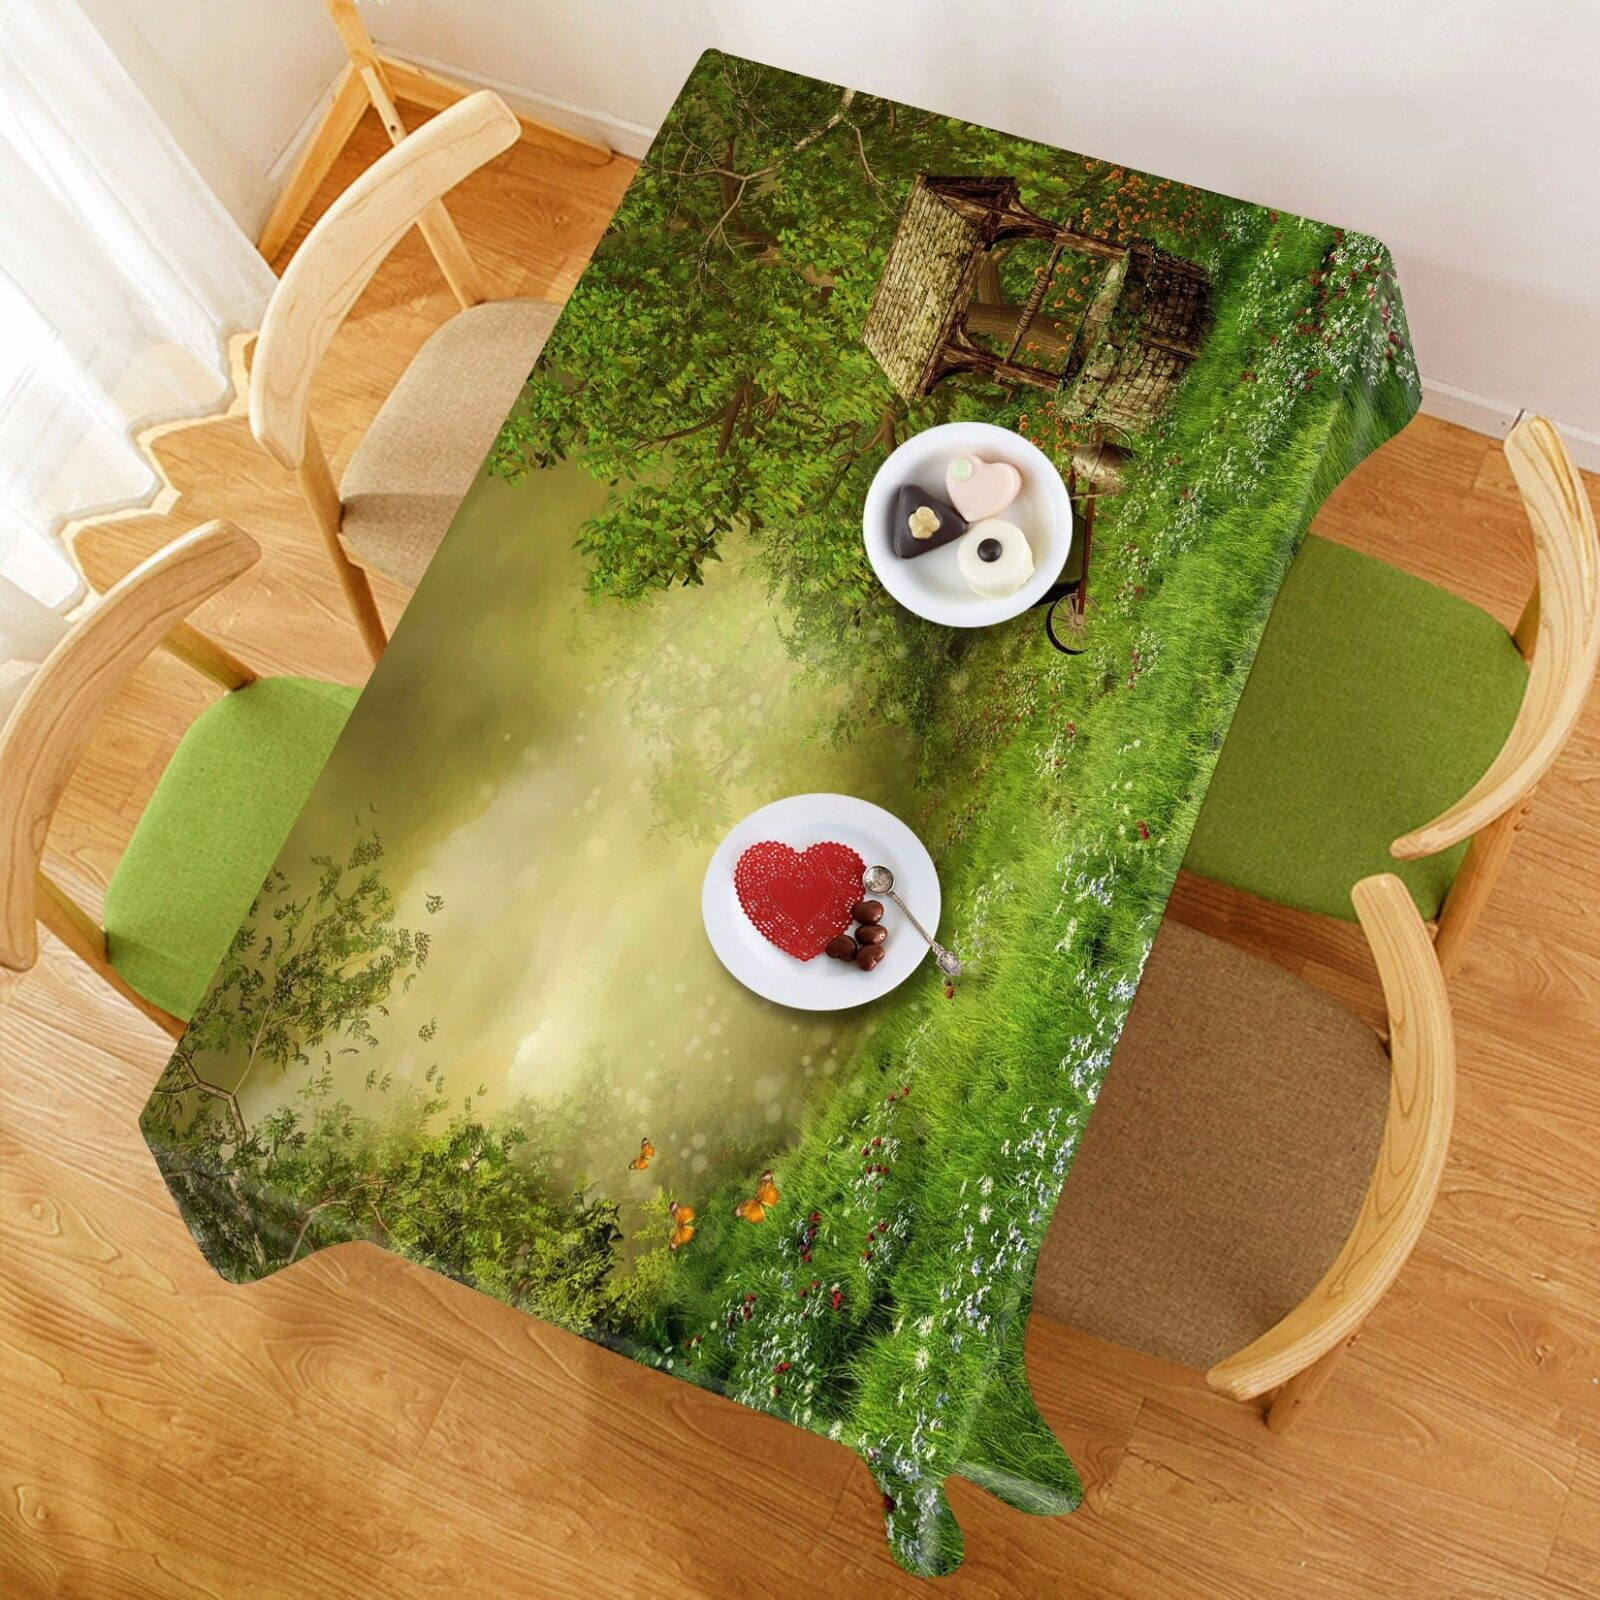 3D Well Scenery 5 Tablecloth Table Cover Cloth Birthday Party Event AJ WALLPAPER